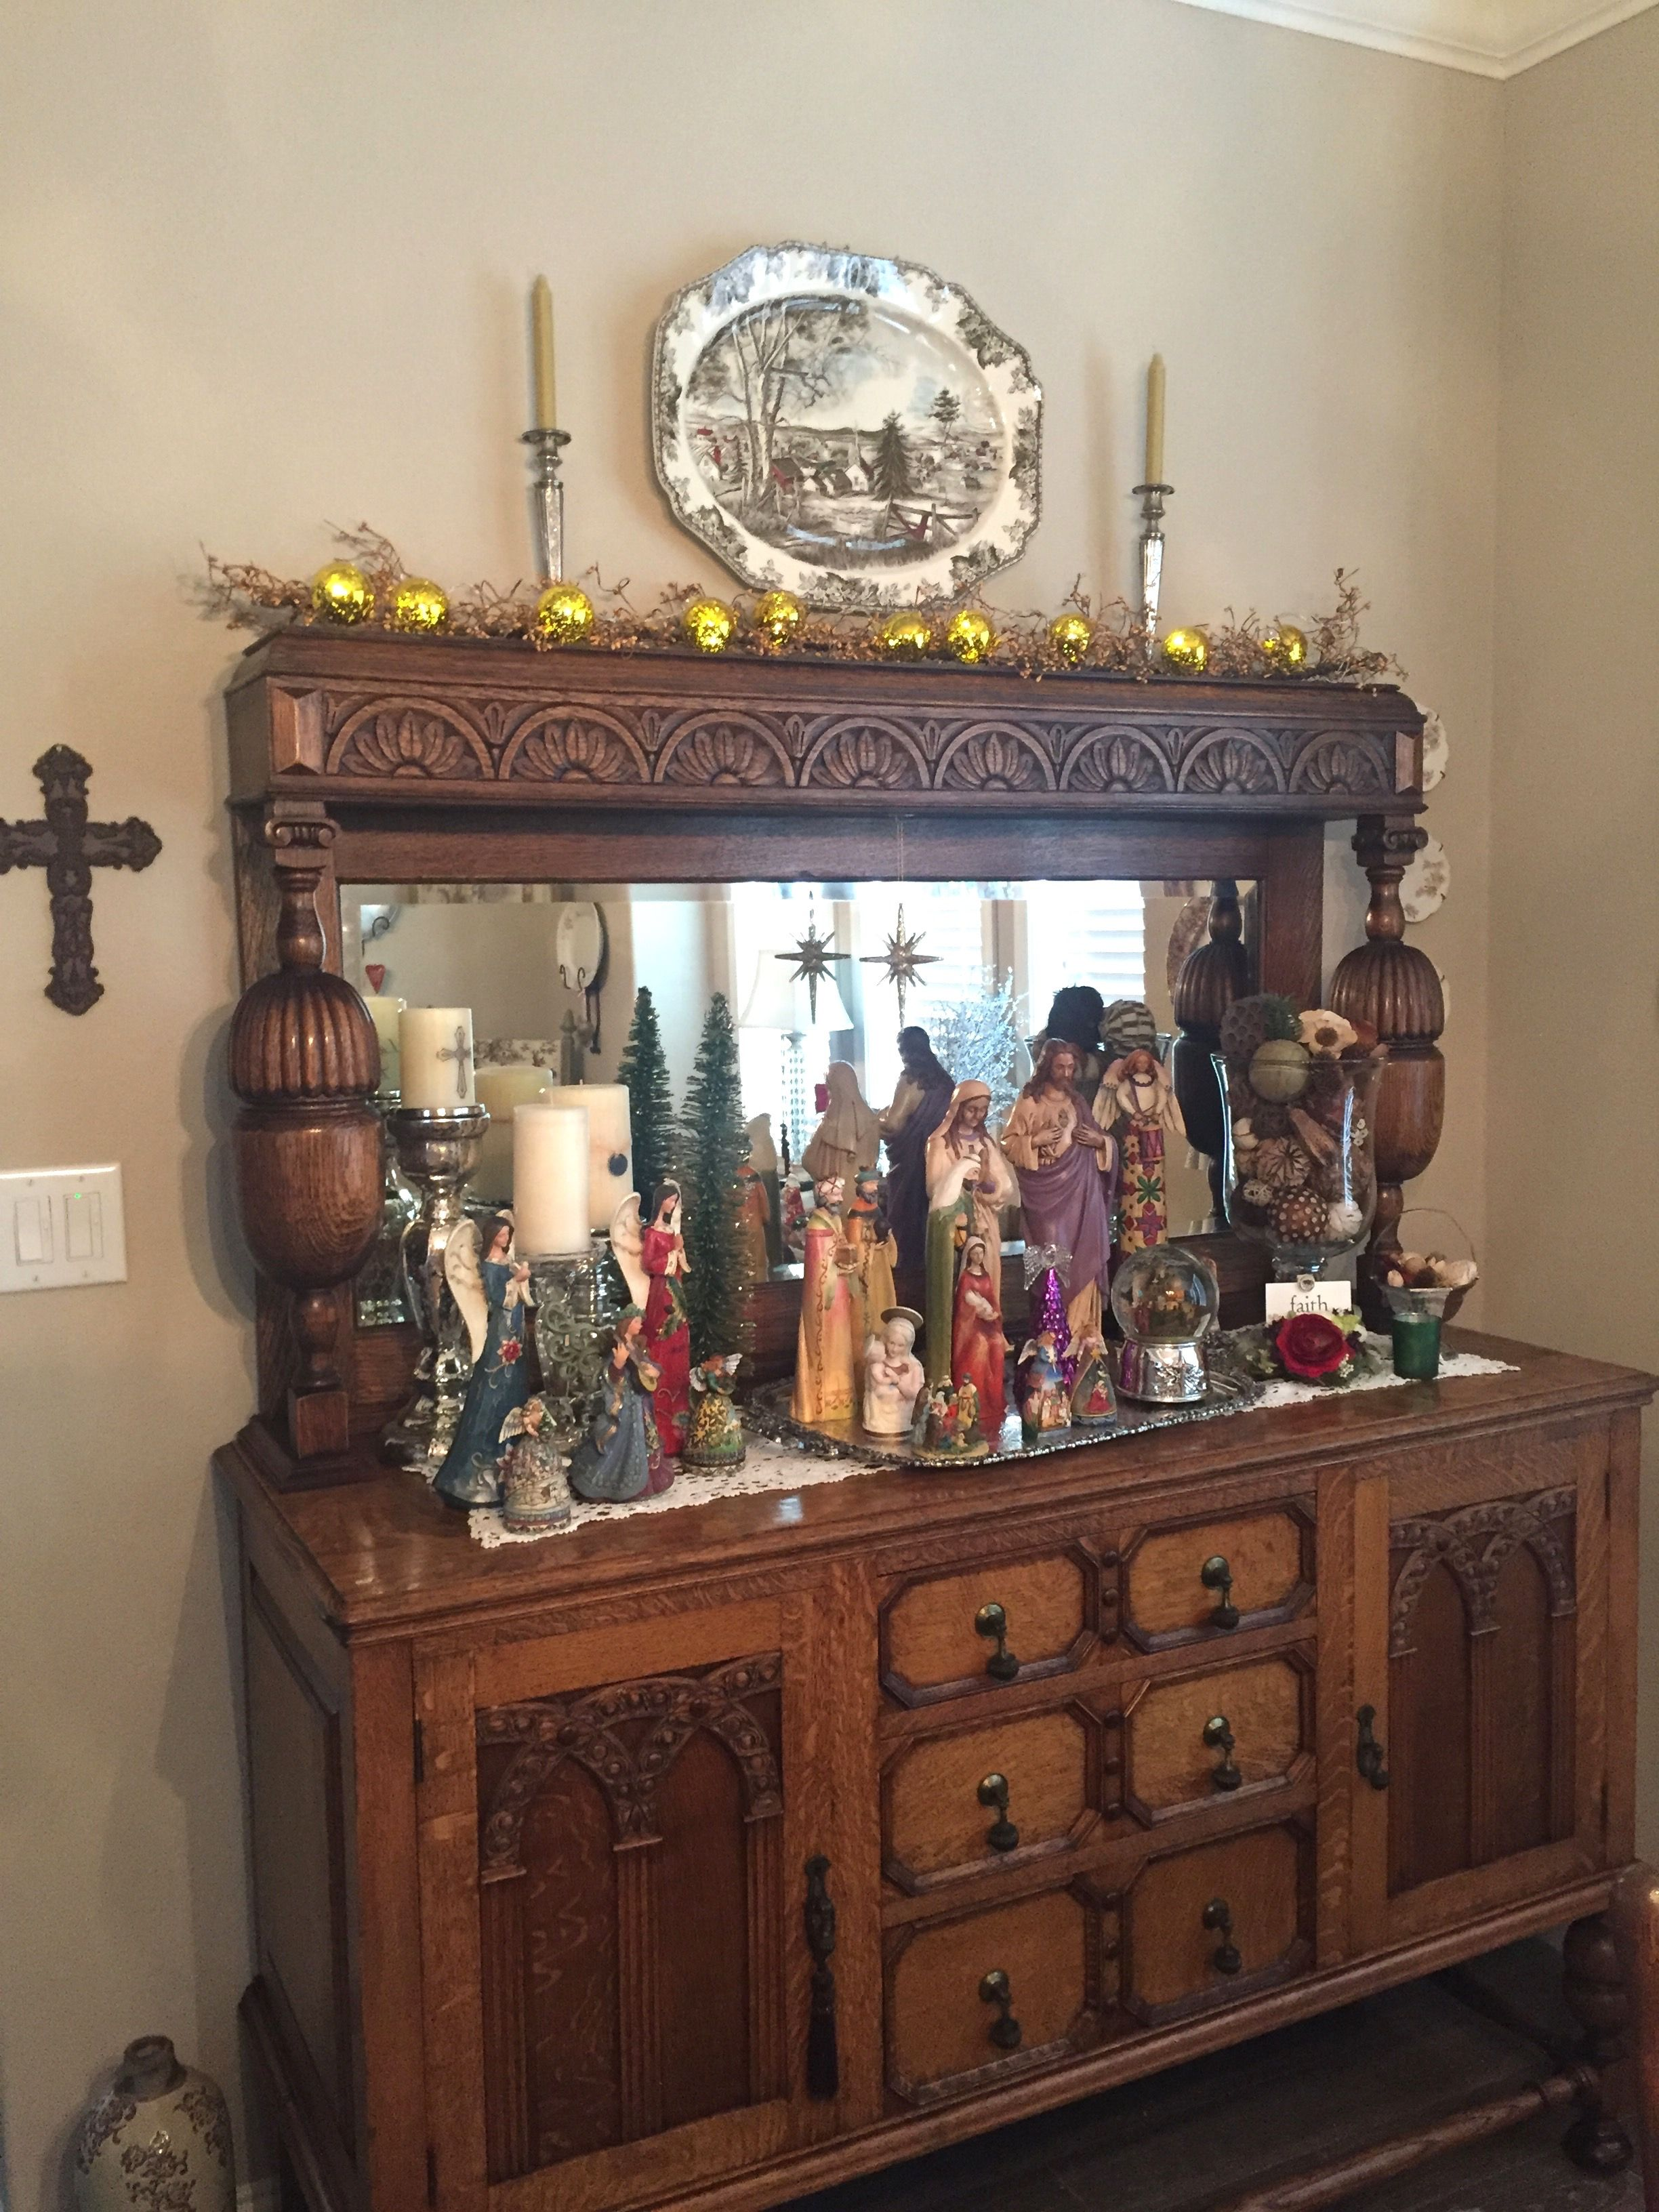 My version of a Nativity Scene.  Antique Quarter-Saw Oak Buffet with my collection of religious statues, some given to me by my grandmother and great grandmother.